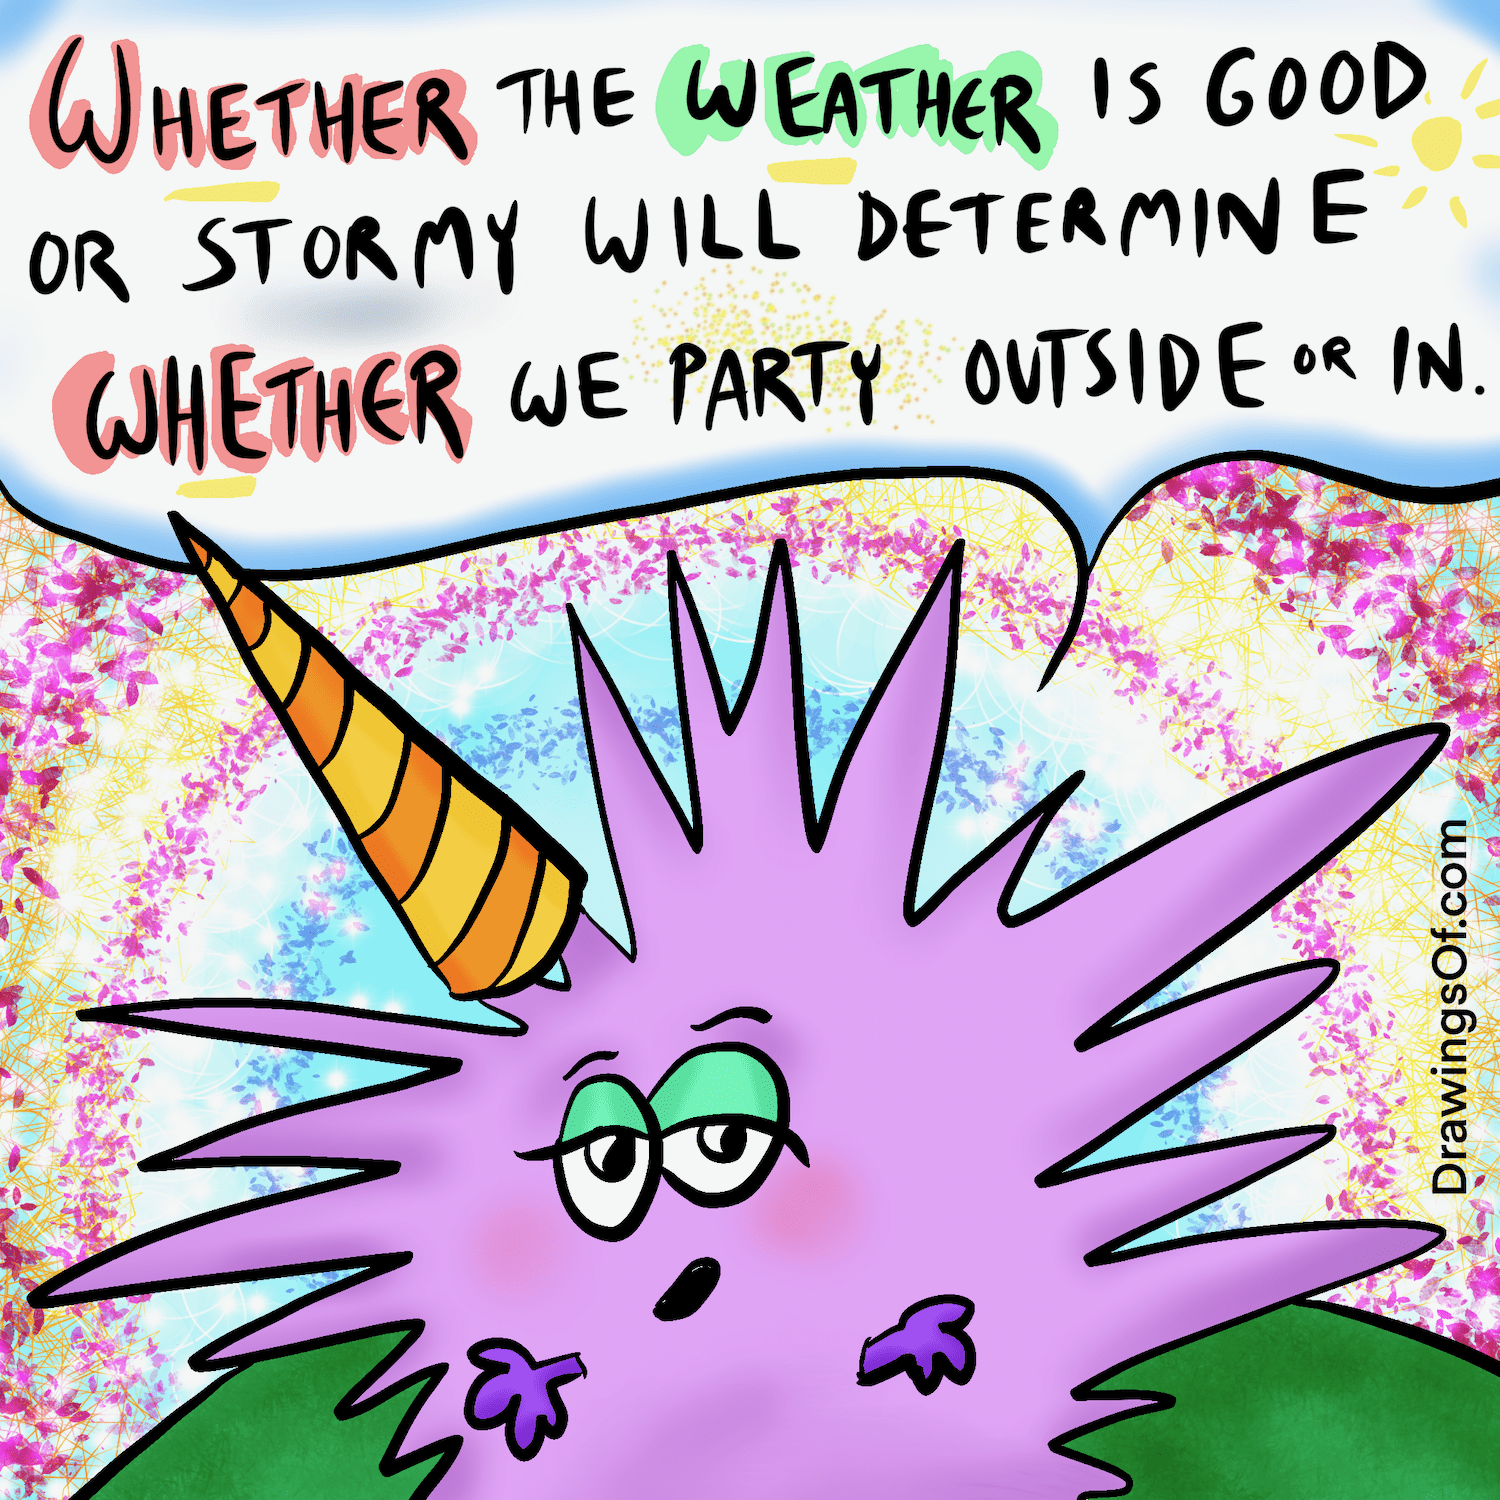 Whether or weather